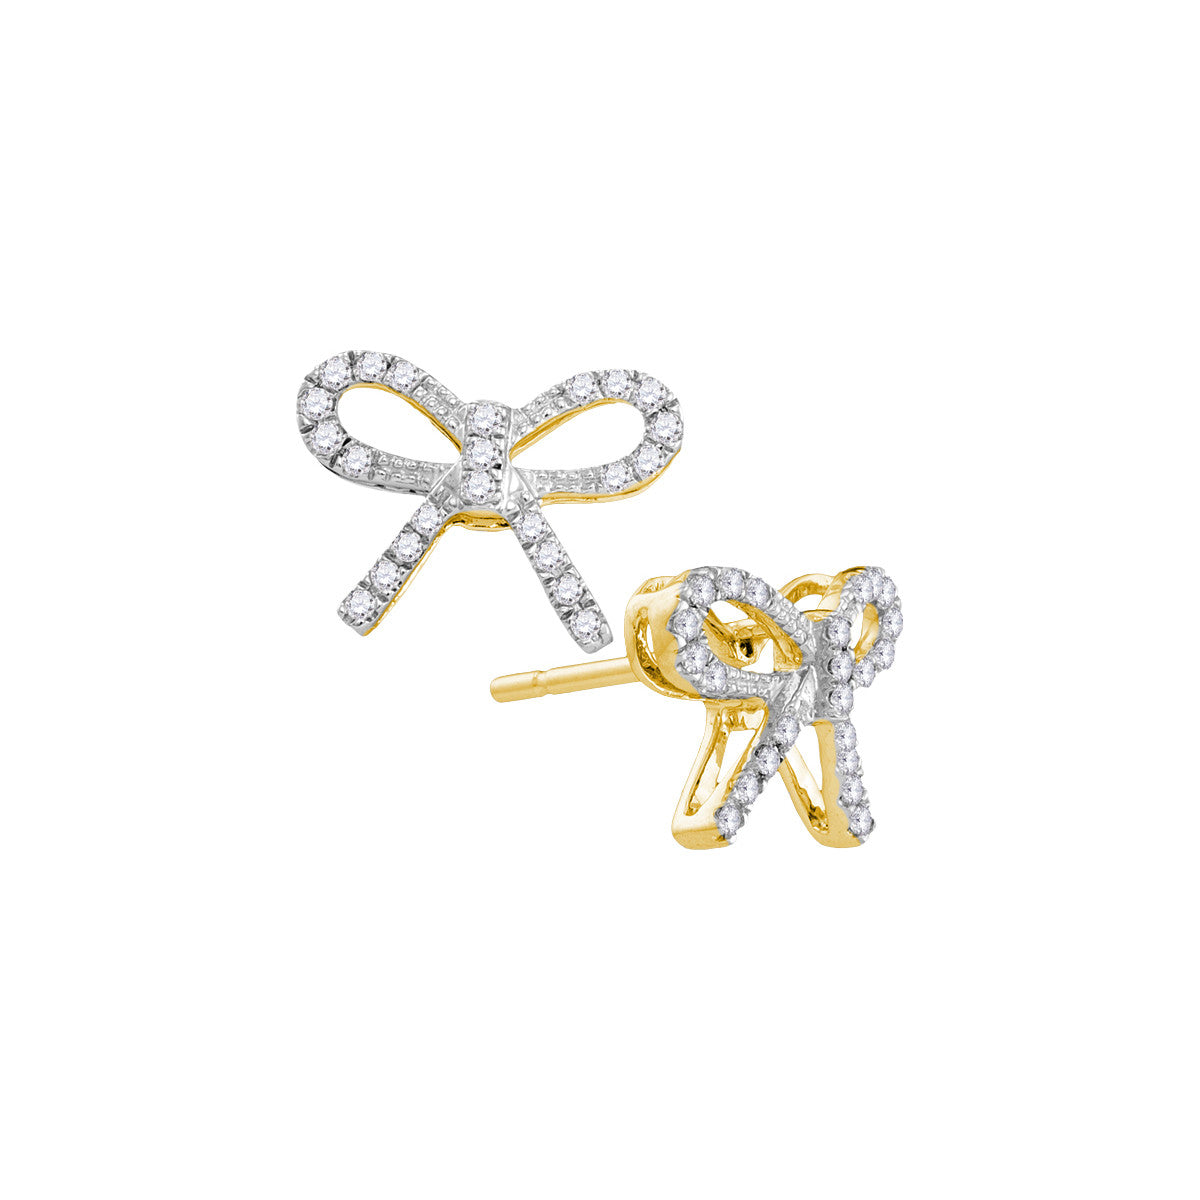 10kt Yellow Gold Womens Round Diamond Bow-tie Stud Earrings 1/5 Cttw 105917 - shirin-diamonds